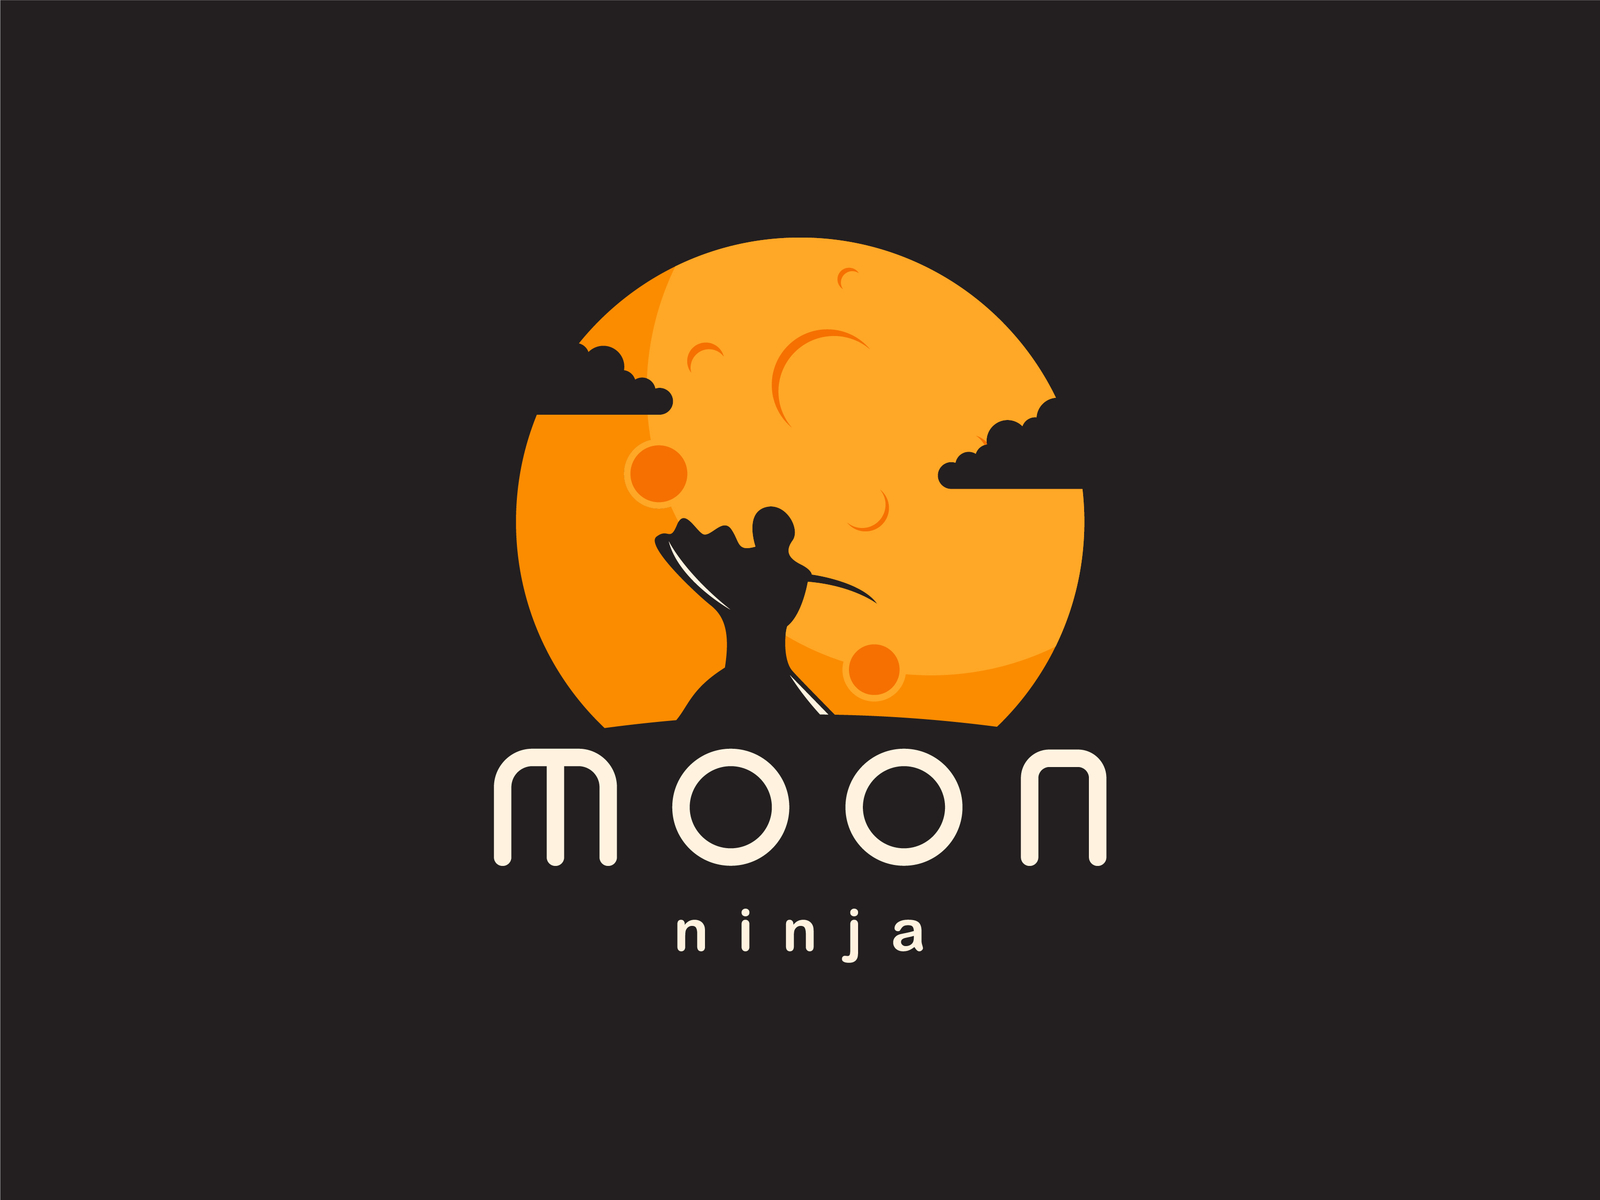 30 Eye Catching Moon Logos For Inspiration Decolore Net Check out this list and find a moon logo which will inspire you to create your own. 30 eye catching moon logos for